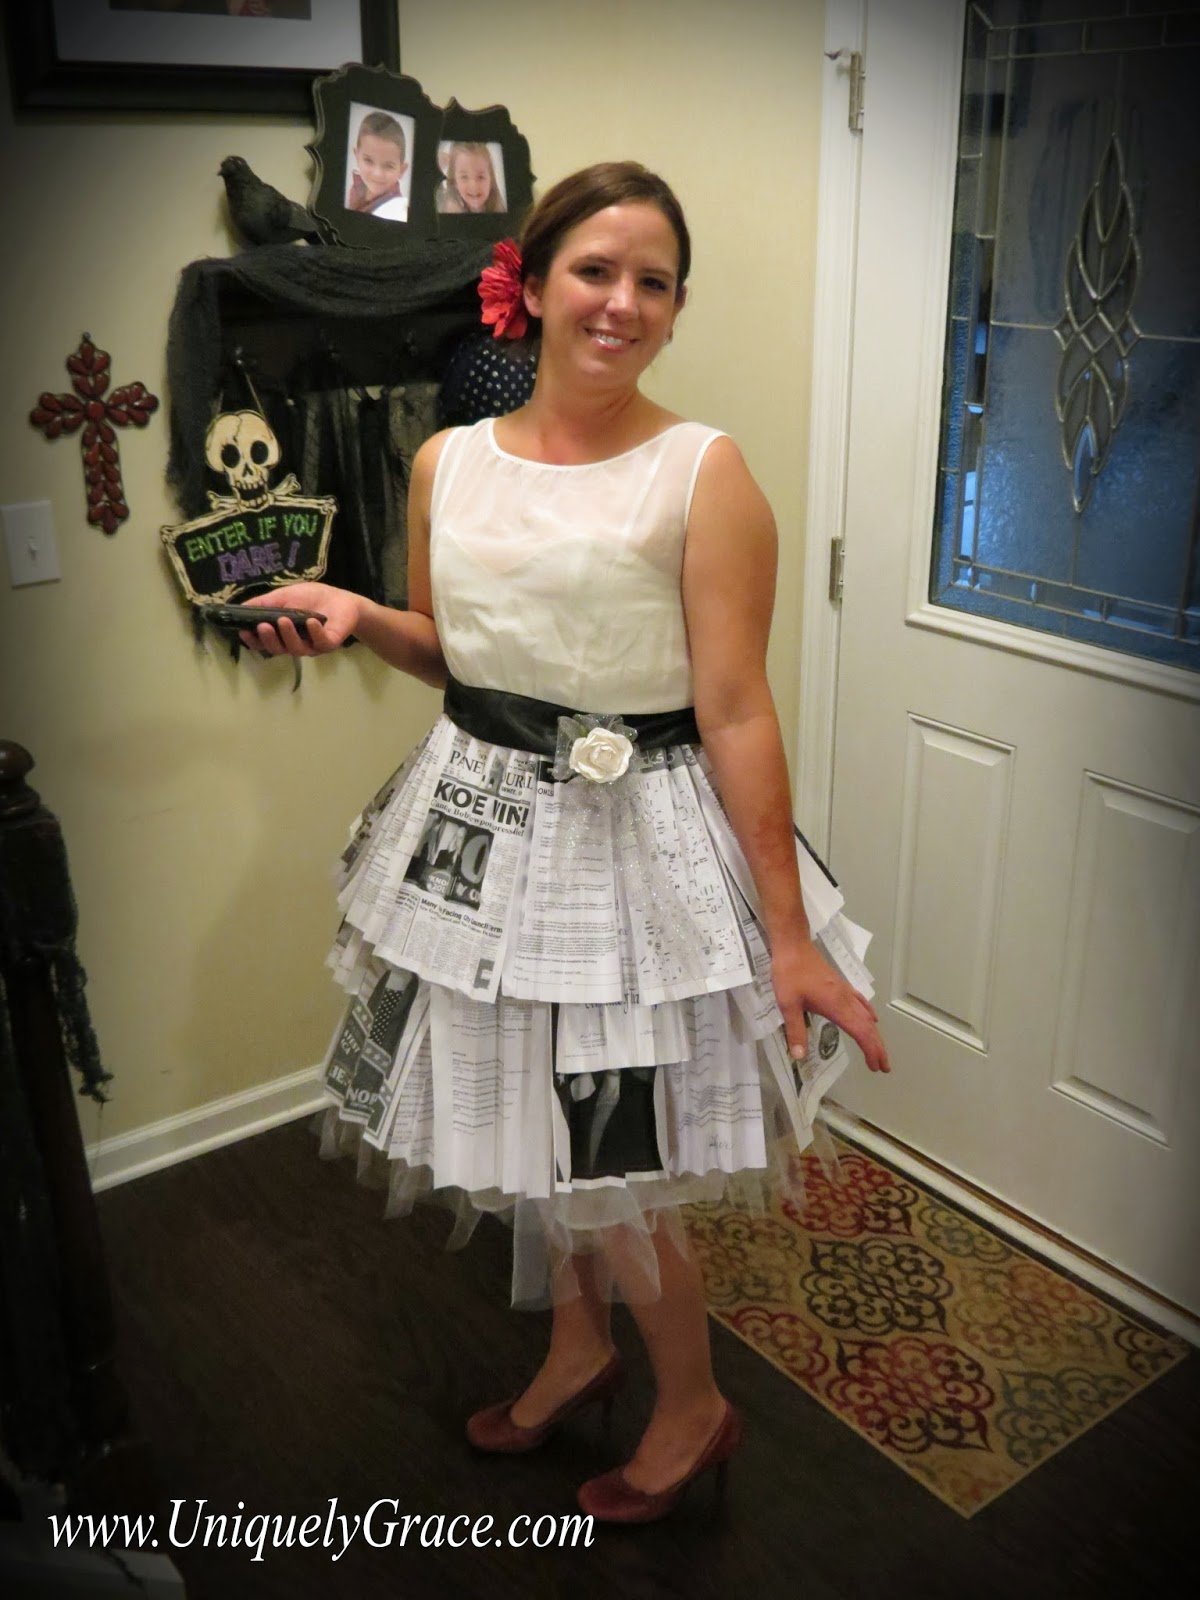 parks and recration leslie knopes wedding dress halloween costume Uniquely Grace